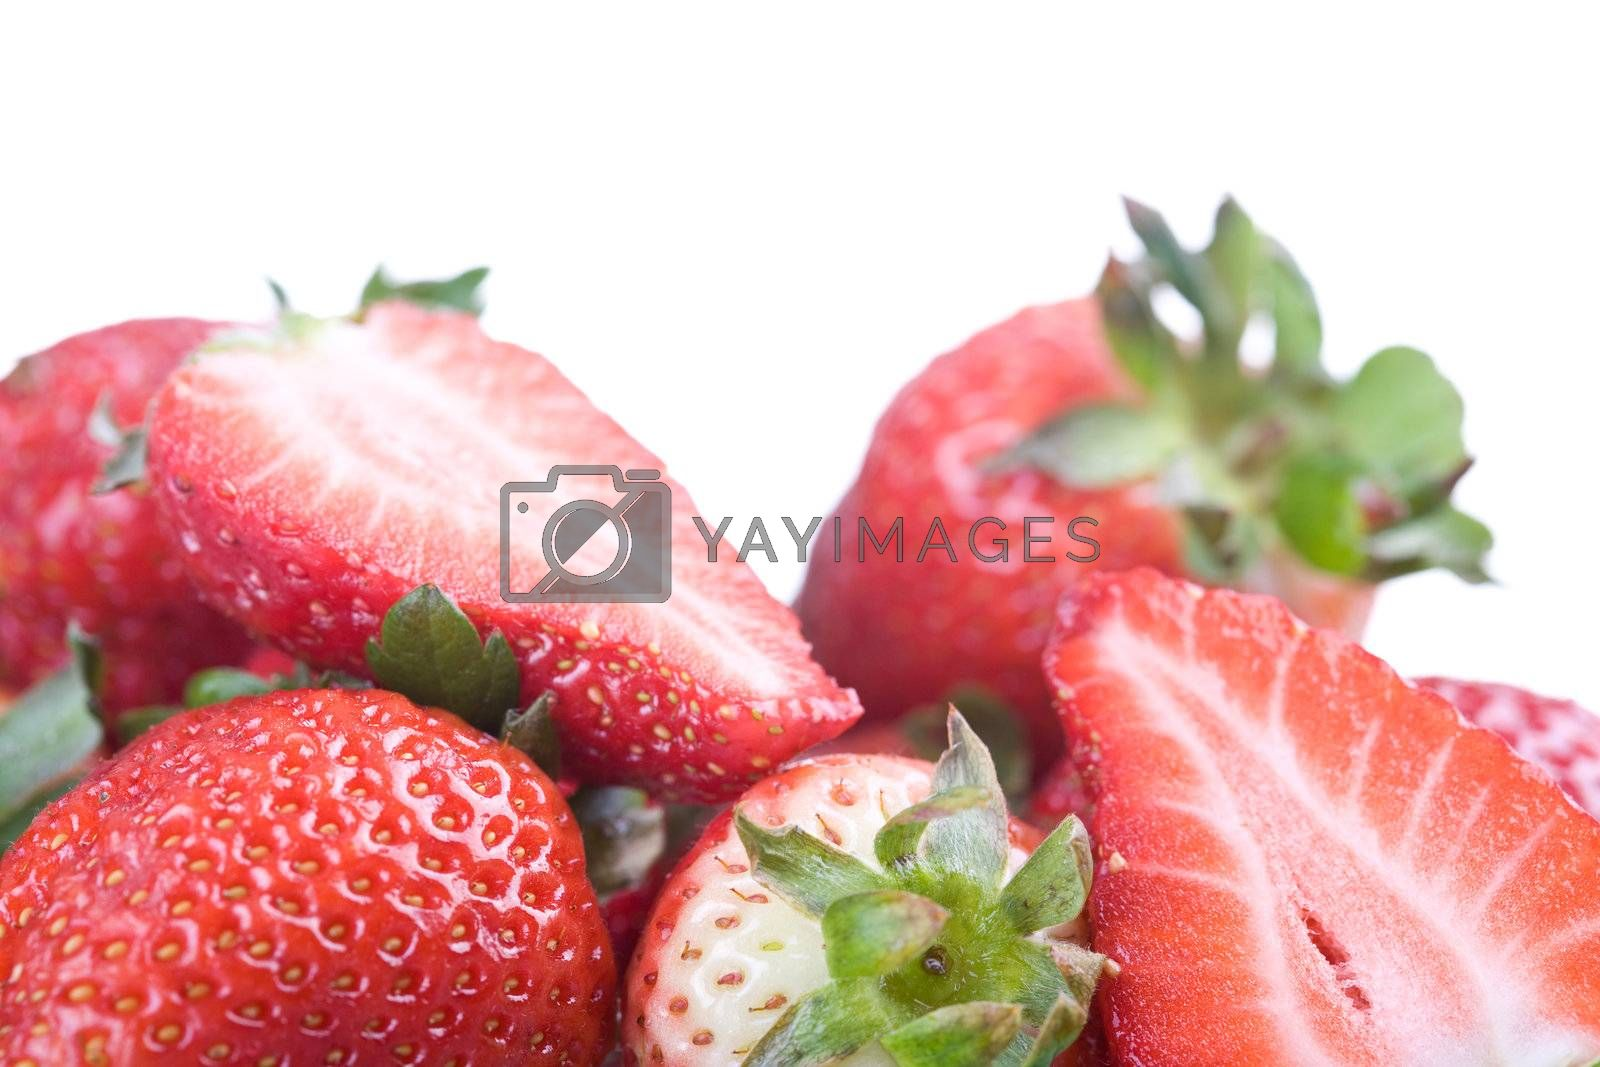 Royalty free image of Strawberries by ajn